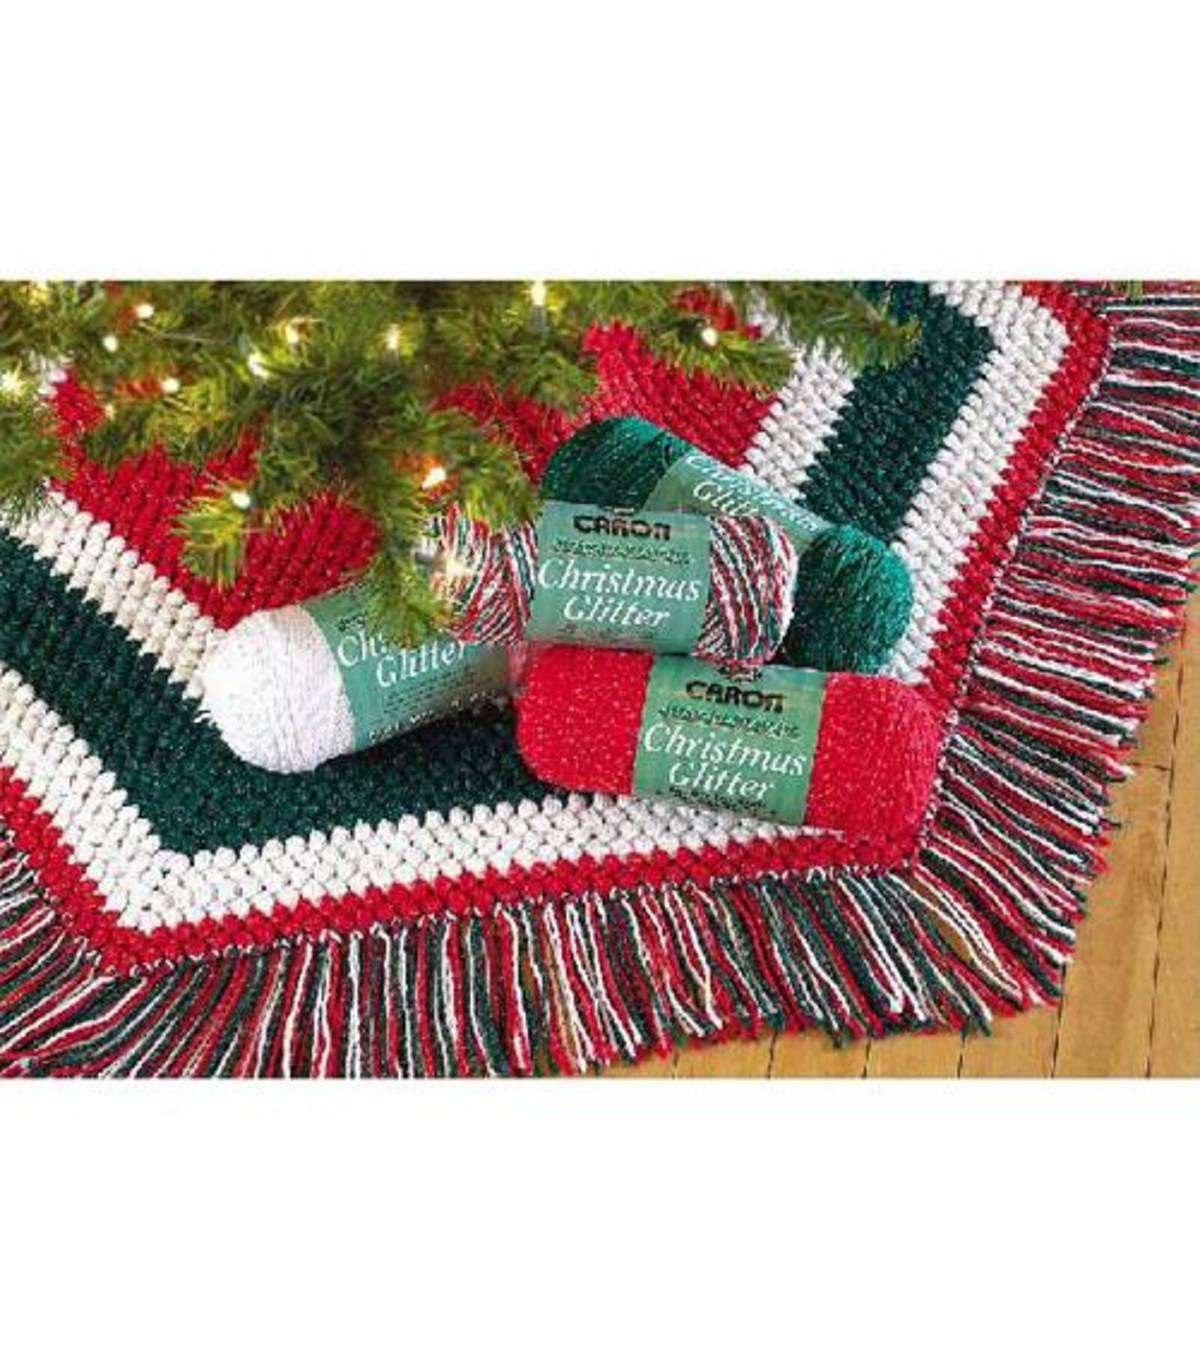 Free Crochet Tree Skirt Pattern New Craftdrawer Crafts Crochet A Christmas Tree Skirt Free Of Marvelous 49 Models Free Crochet Tree Skirt Pattern